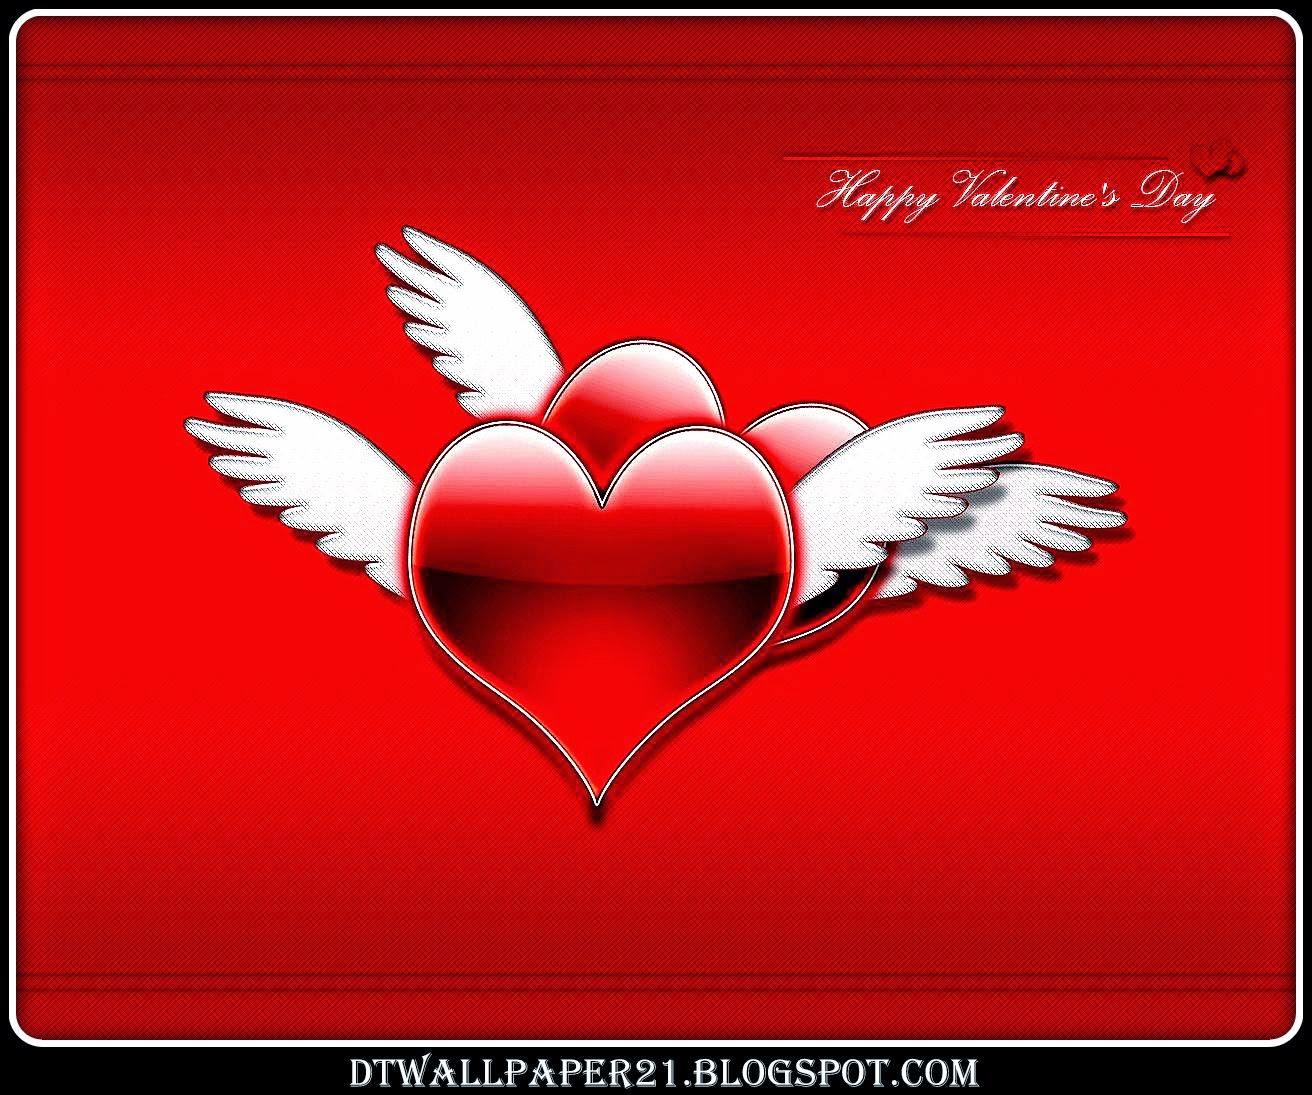 Happy Valentines Day Images, Quotes Wallpaper, Special Valentines Day Ideas,  Valentine Cards,